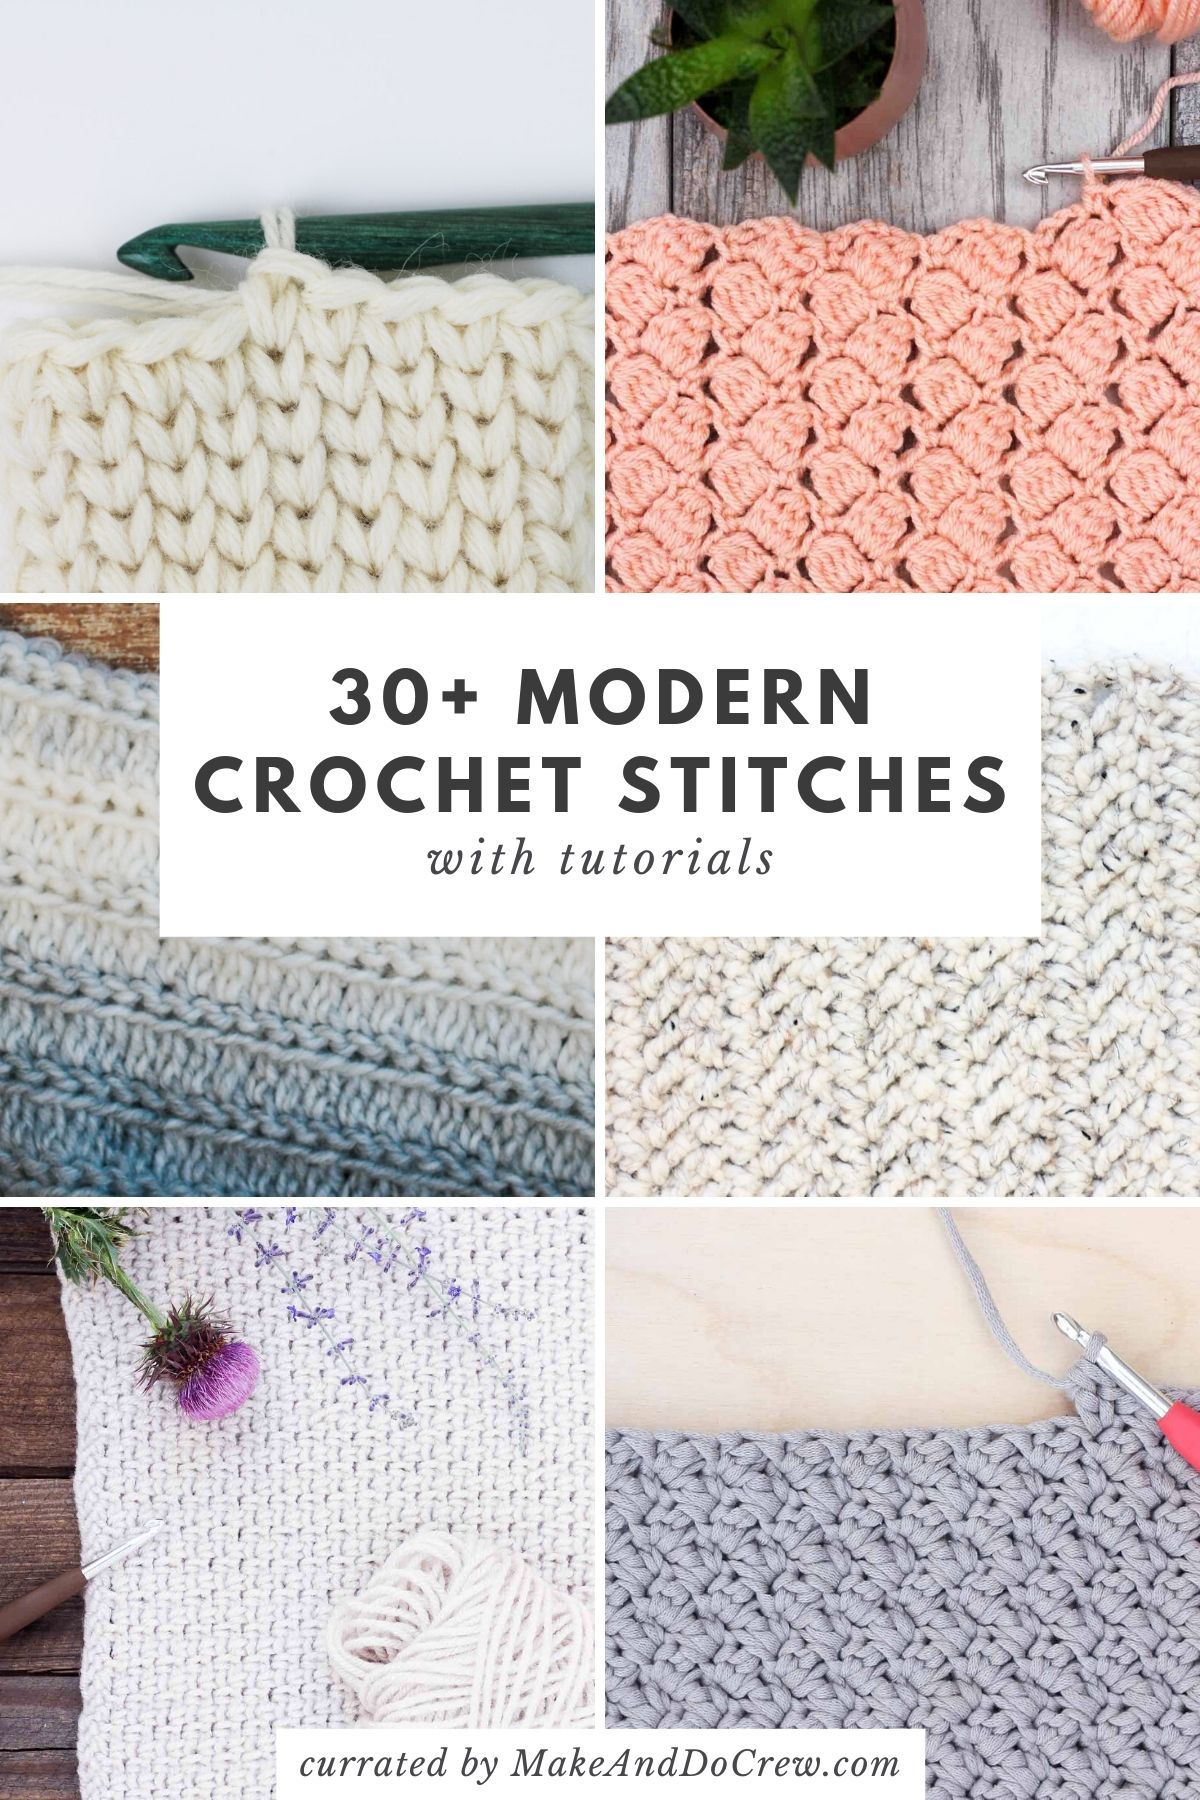 Crochet Stitches for Blankets and Afghans